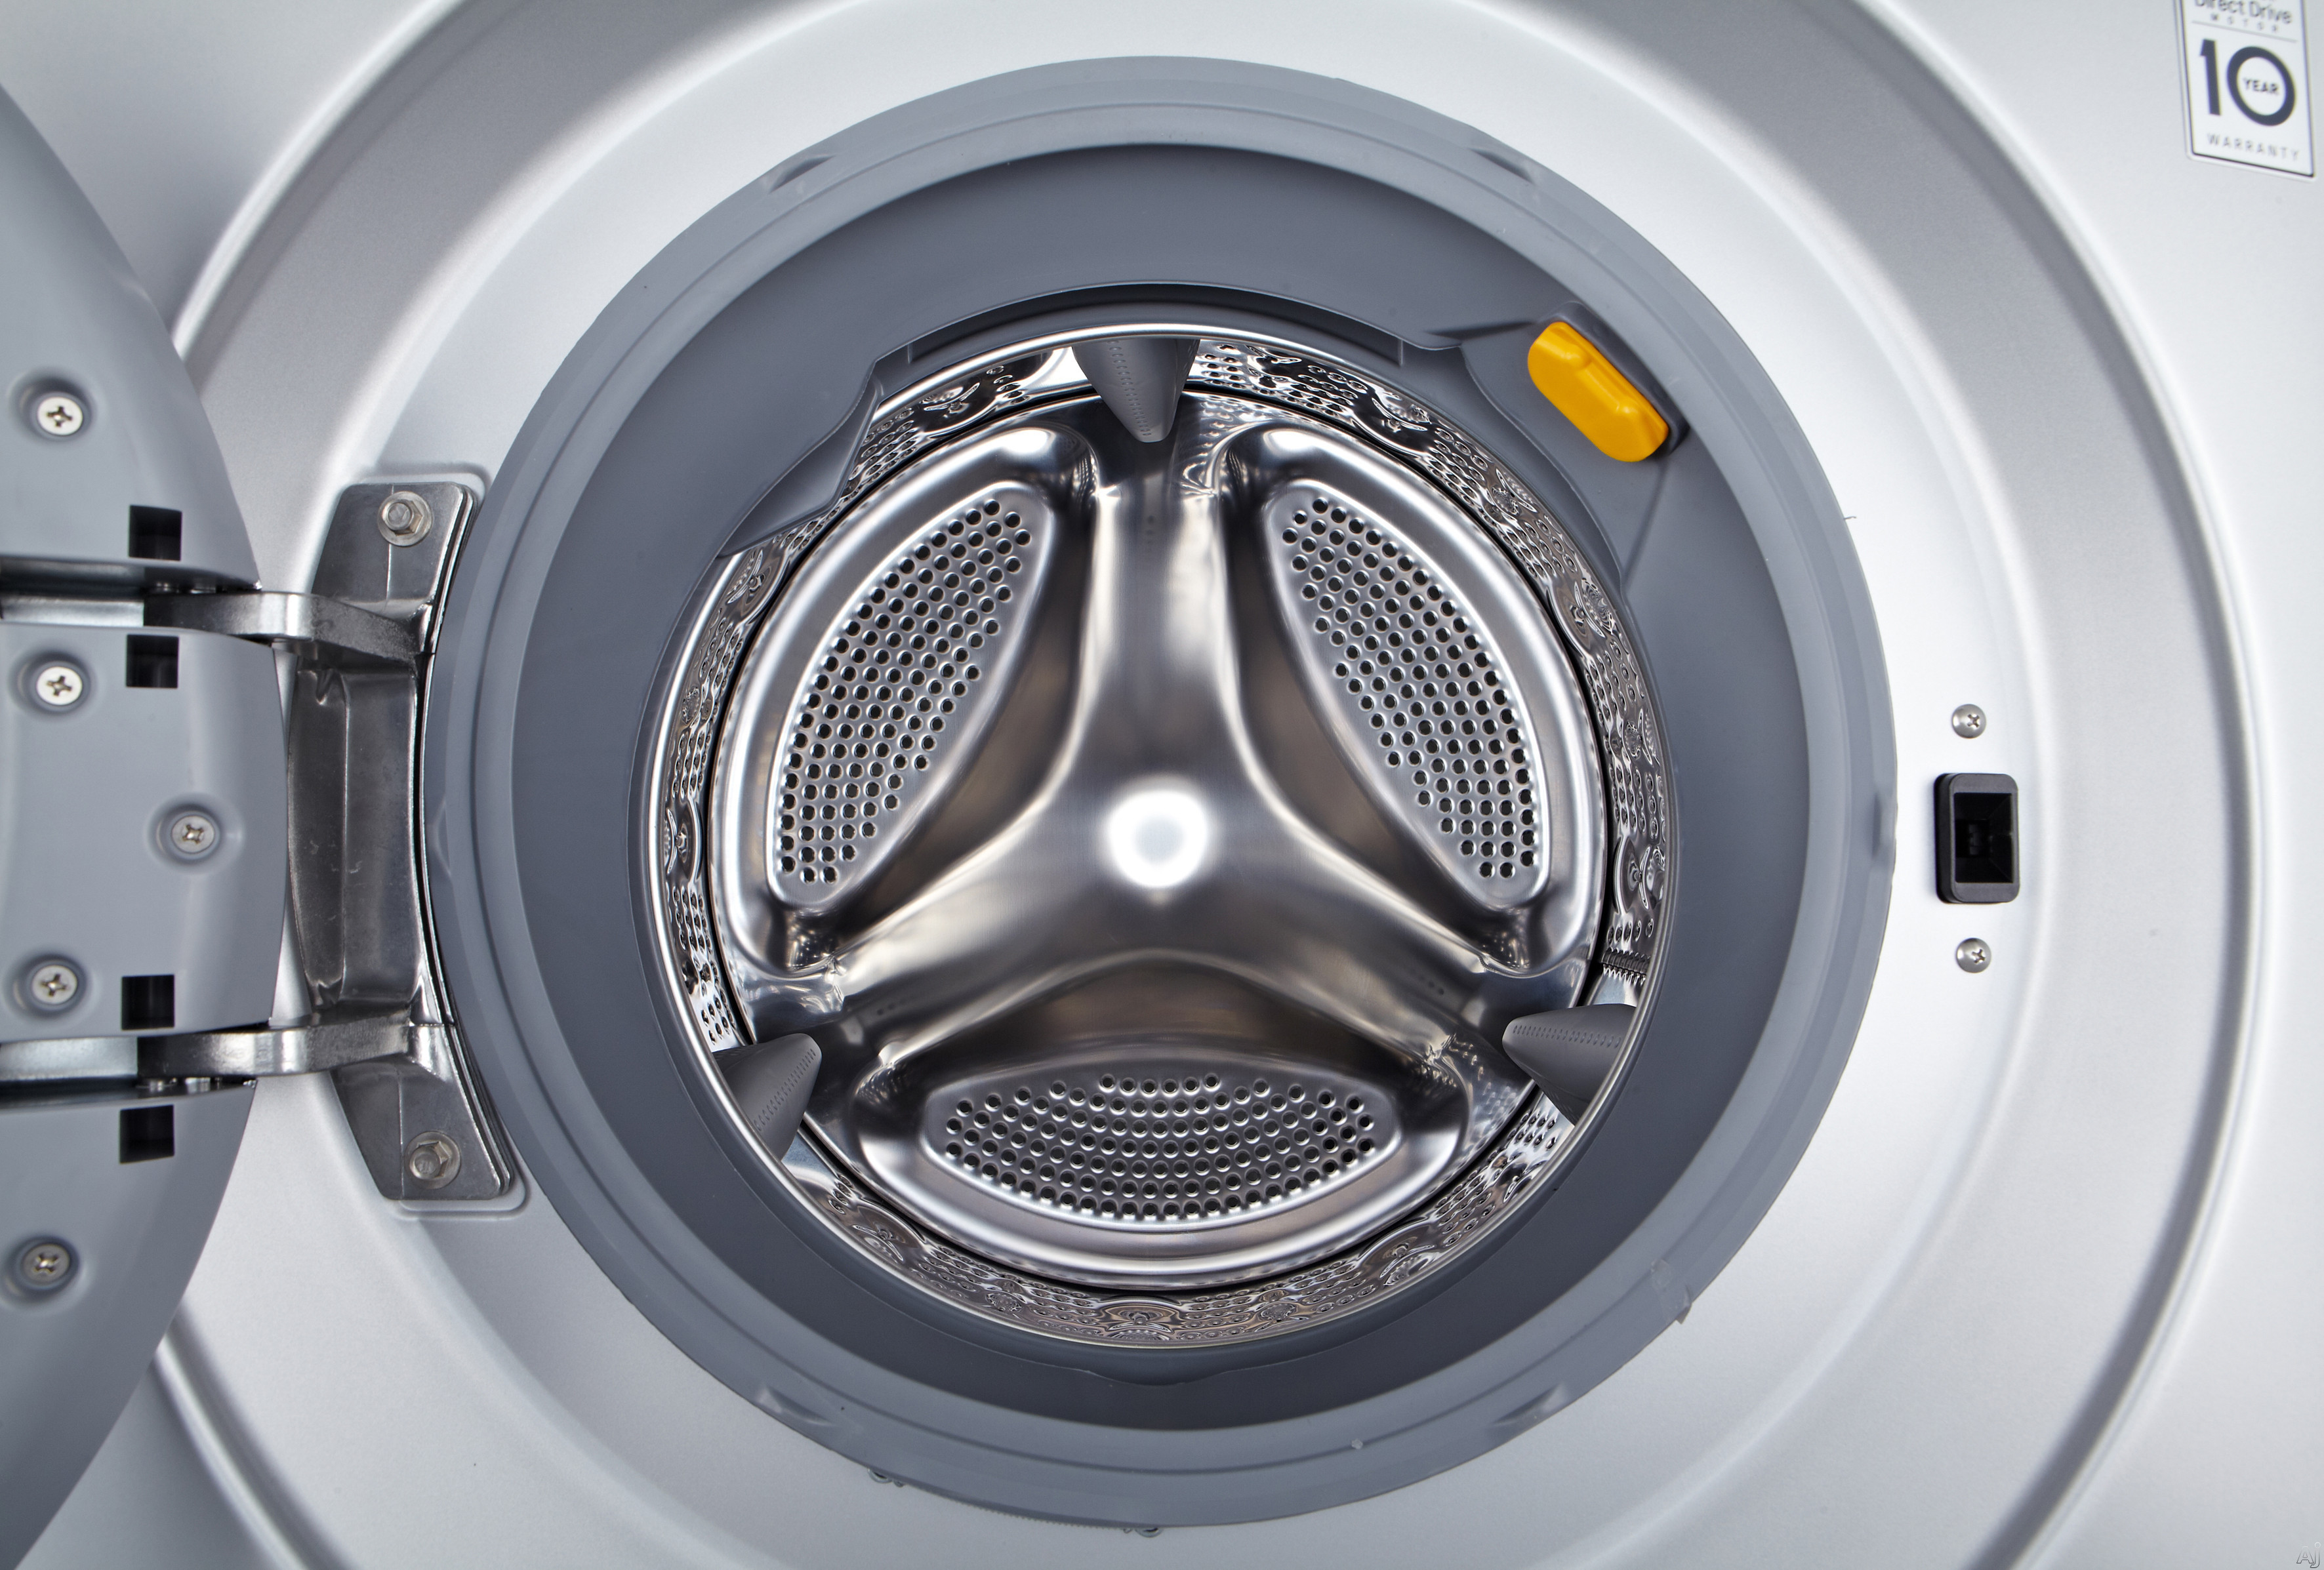 Washer and dryer combos magnificent on home furnishing for yours splendide 2100xc combo 11